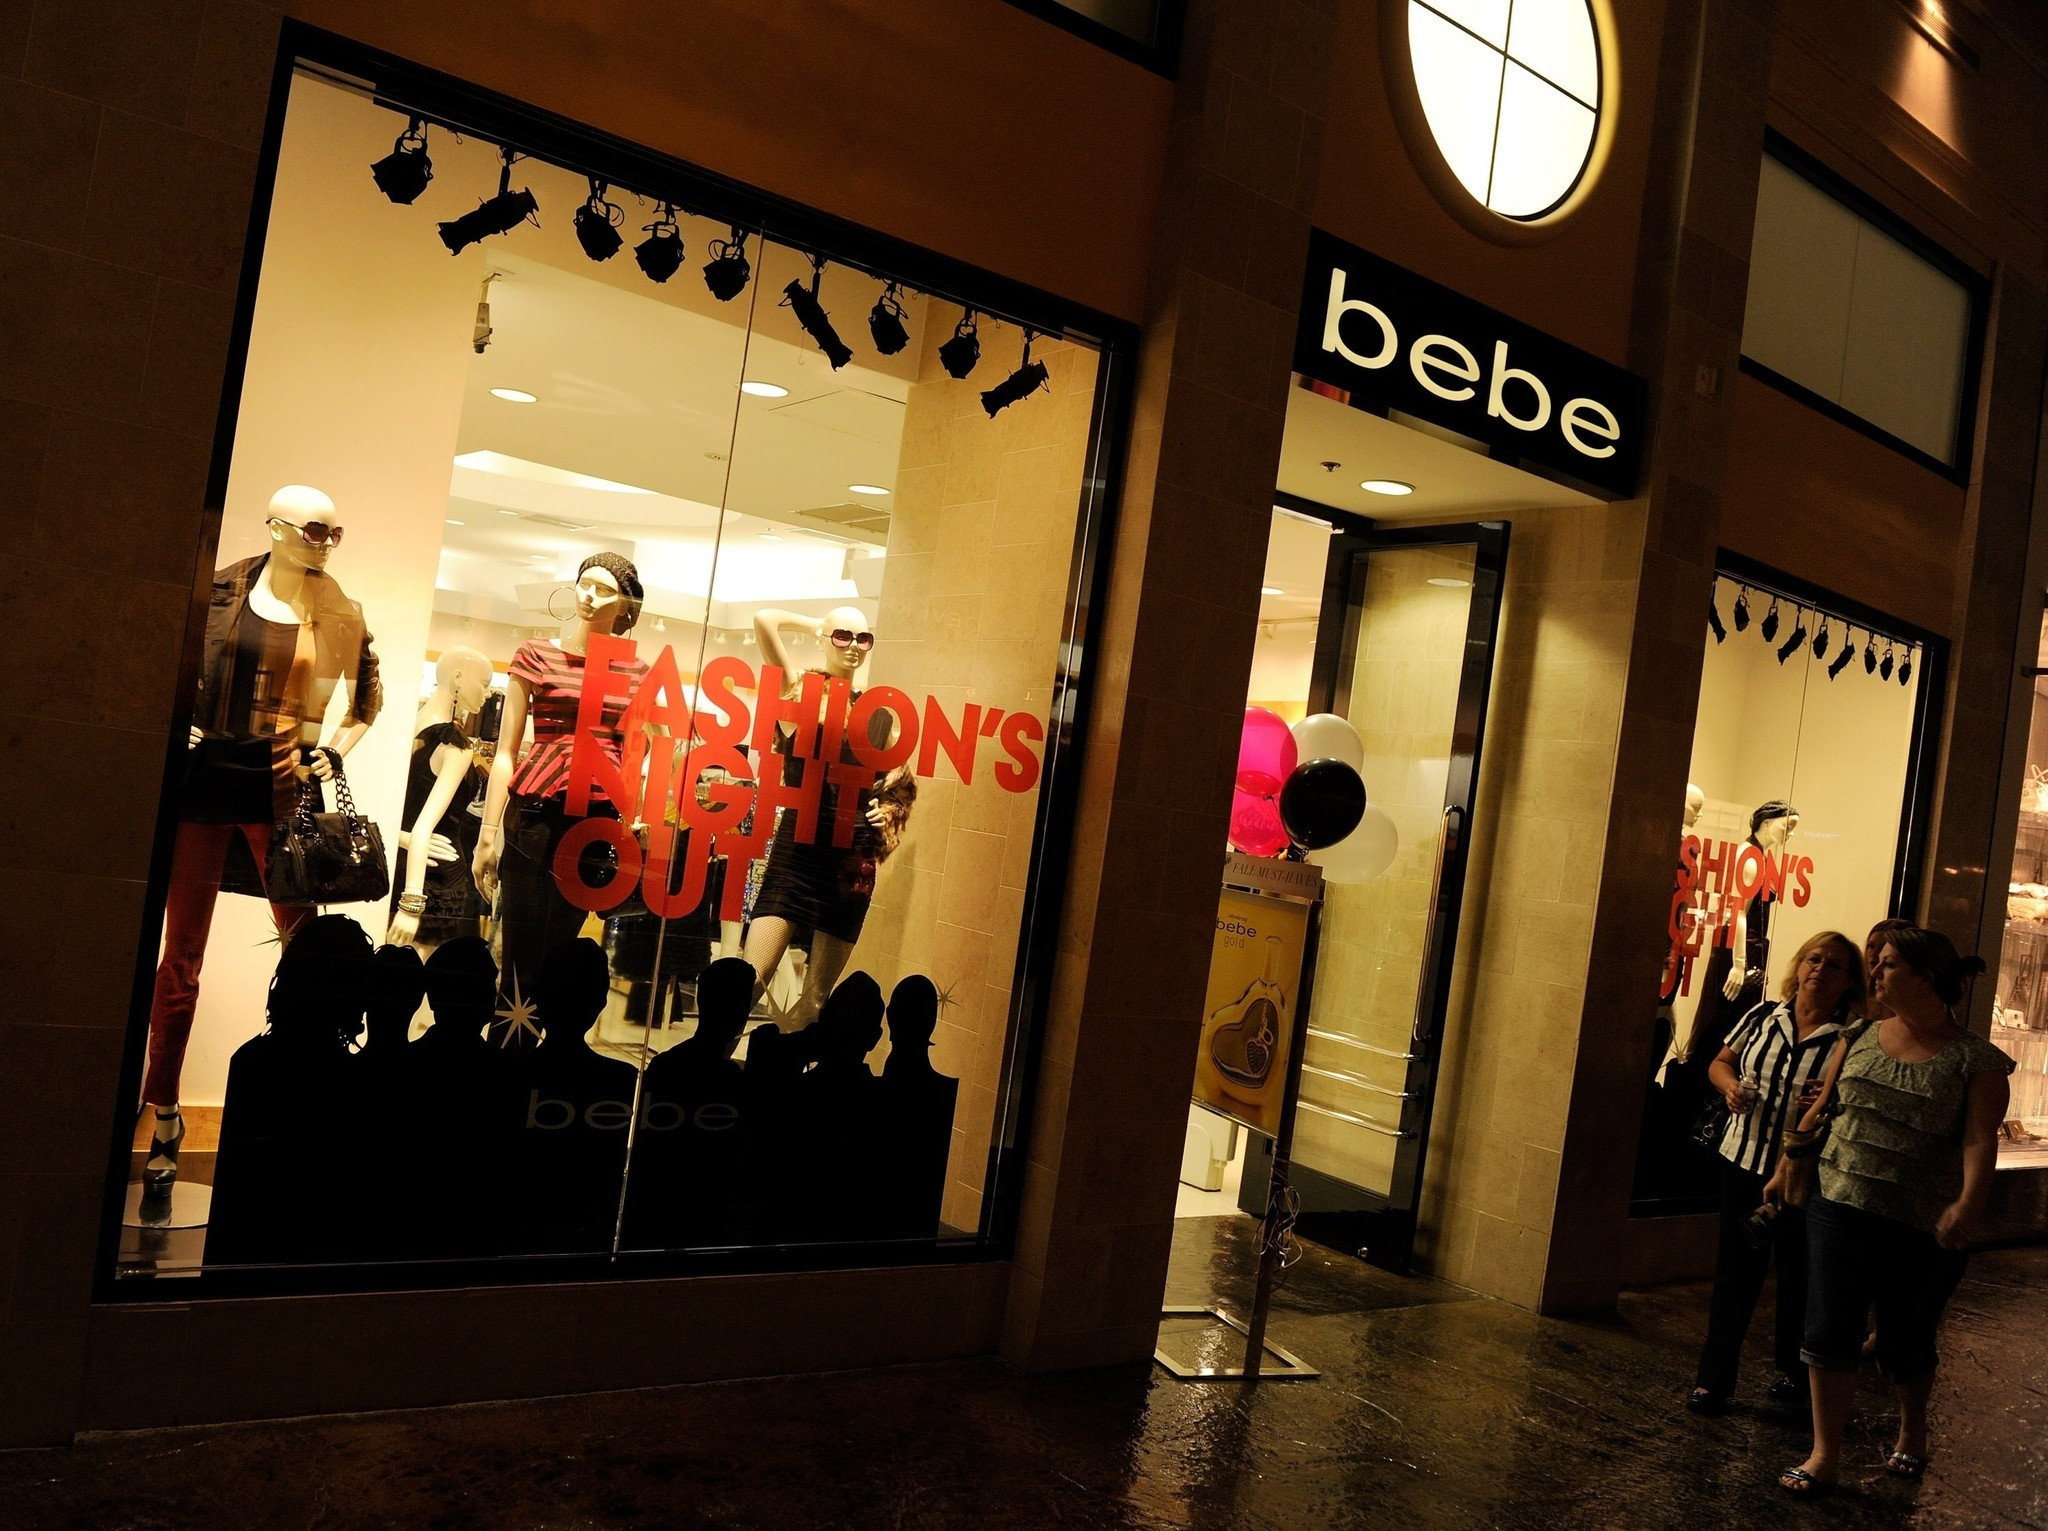 http://www.chicagotribune.com/business/ct-bebe-closing-stores-20170321-story.html